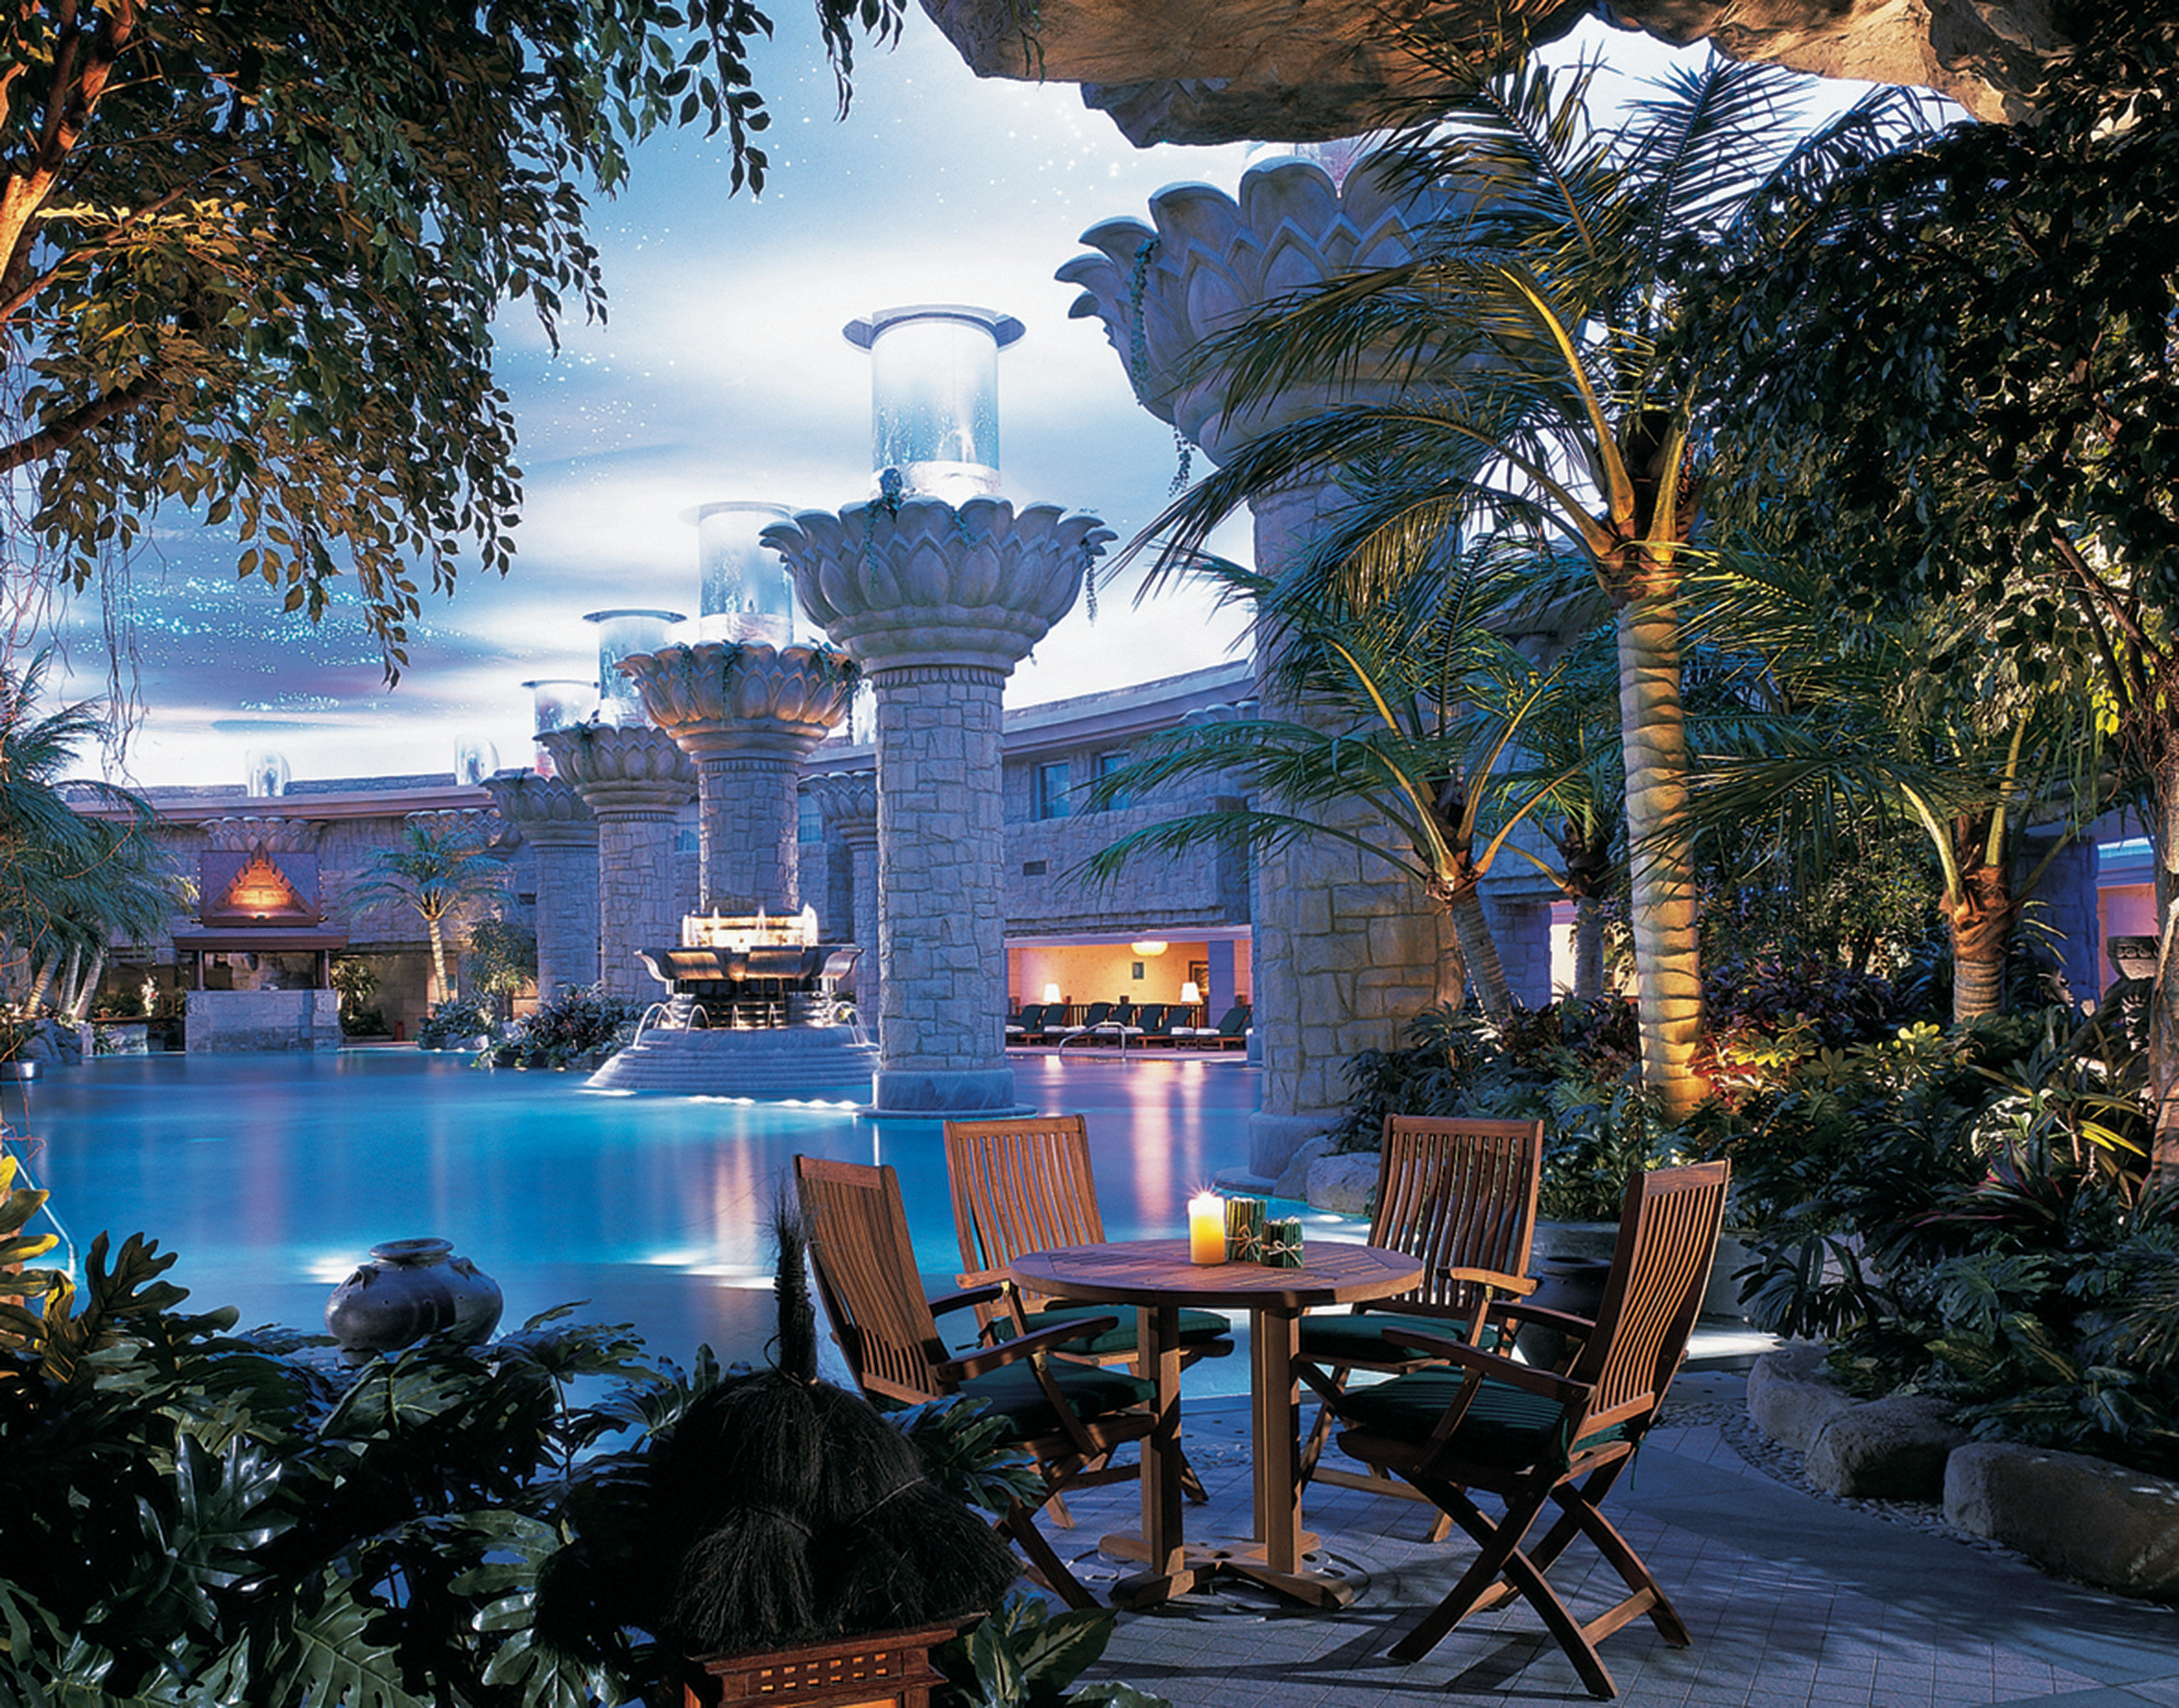 Luxury Modern Pool tree home lighting evening Downtown water feature Resort cityscape surrounded